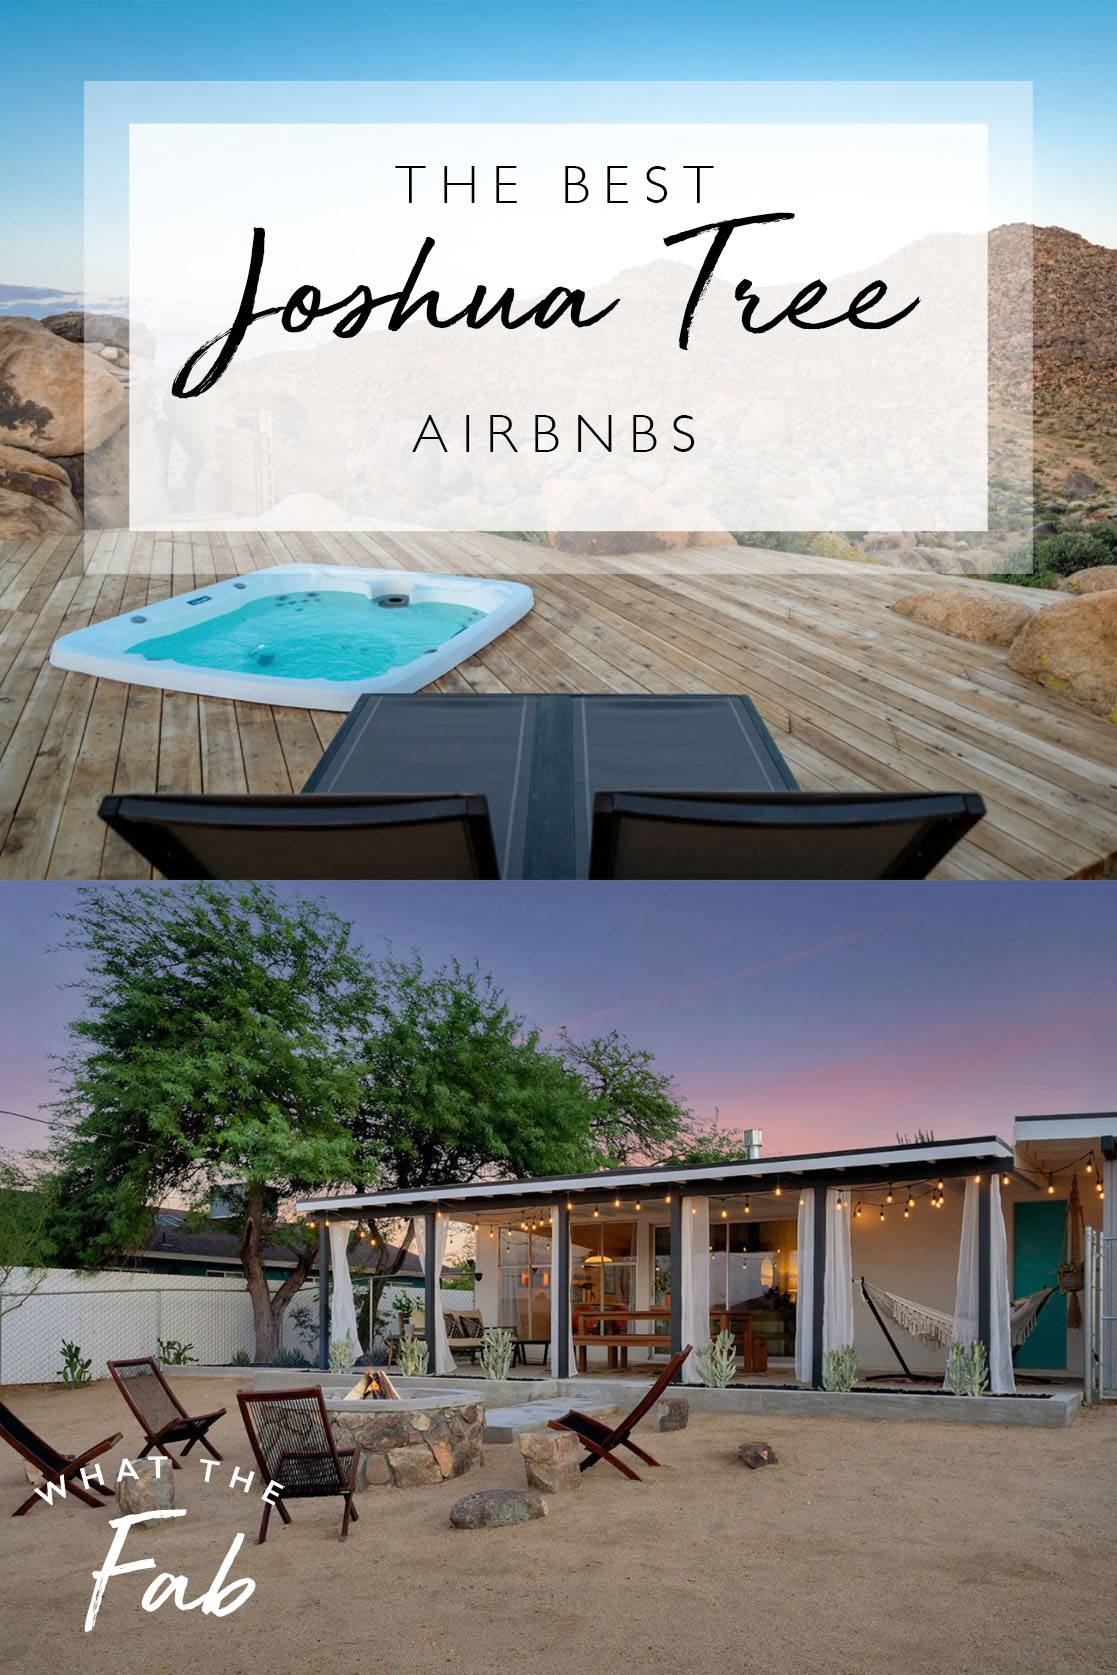 The best Joshua Tree Airbnbs, by travel blogger What The Fab